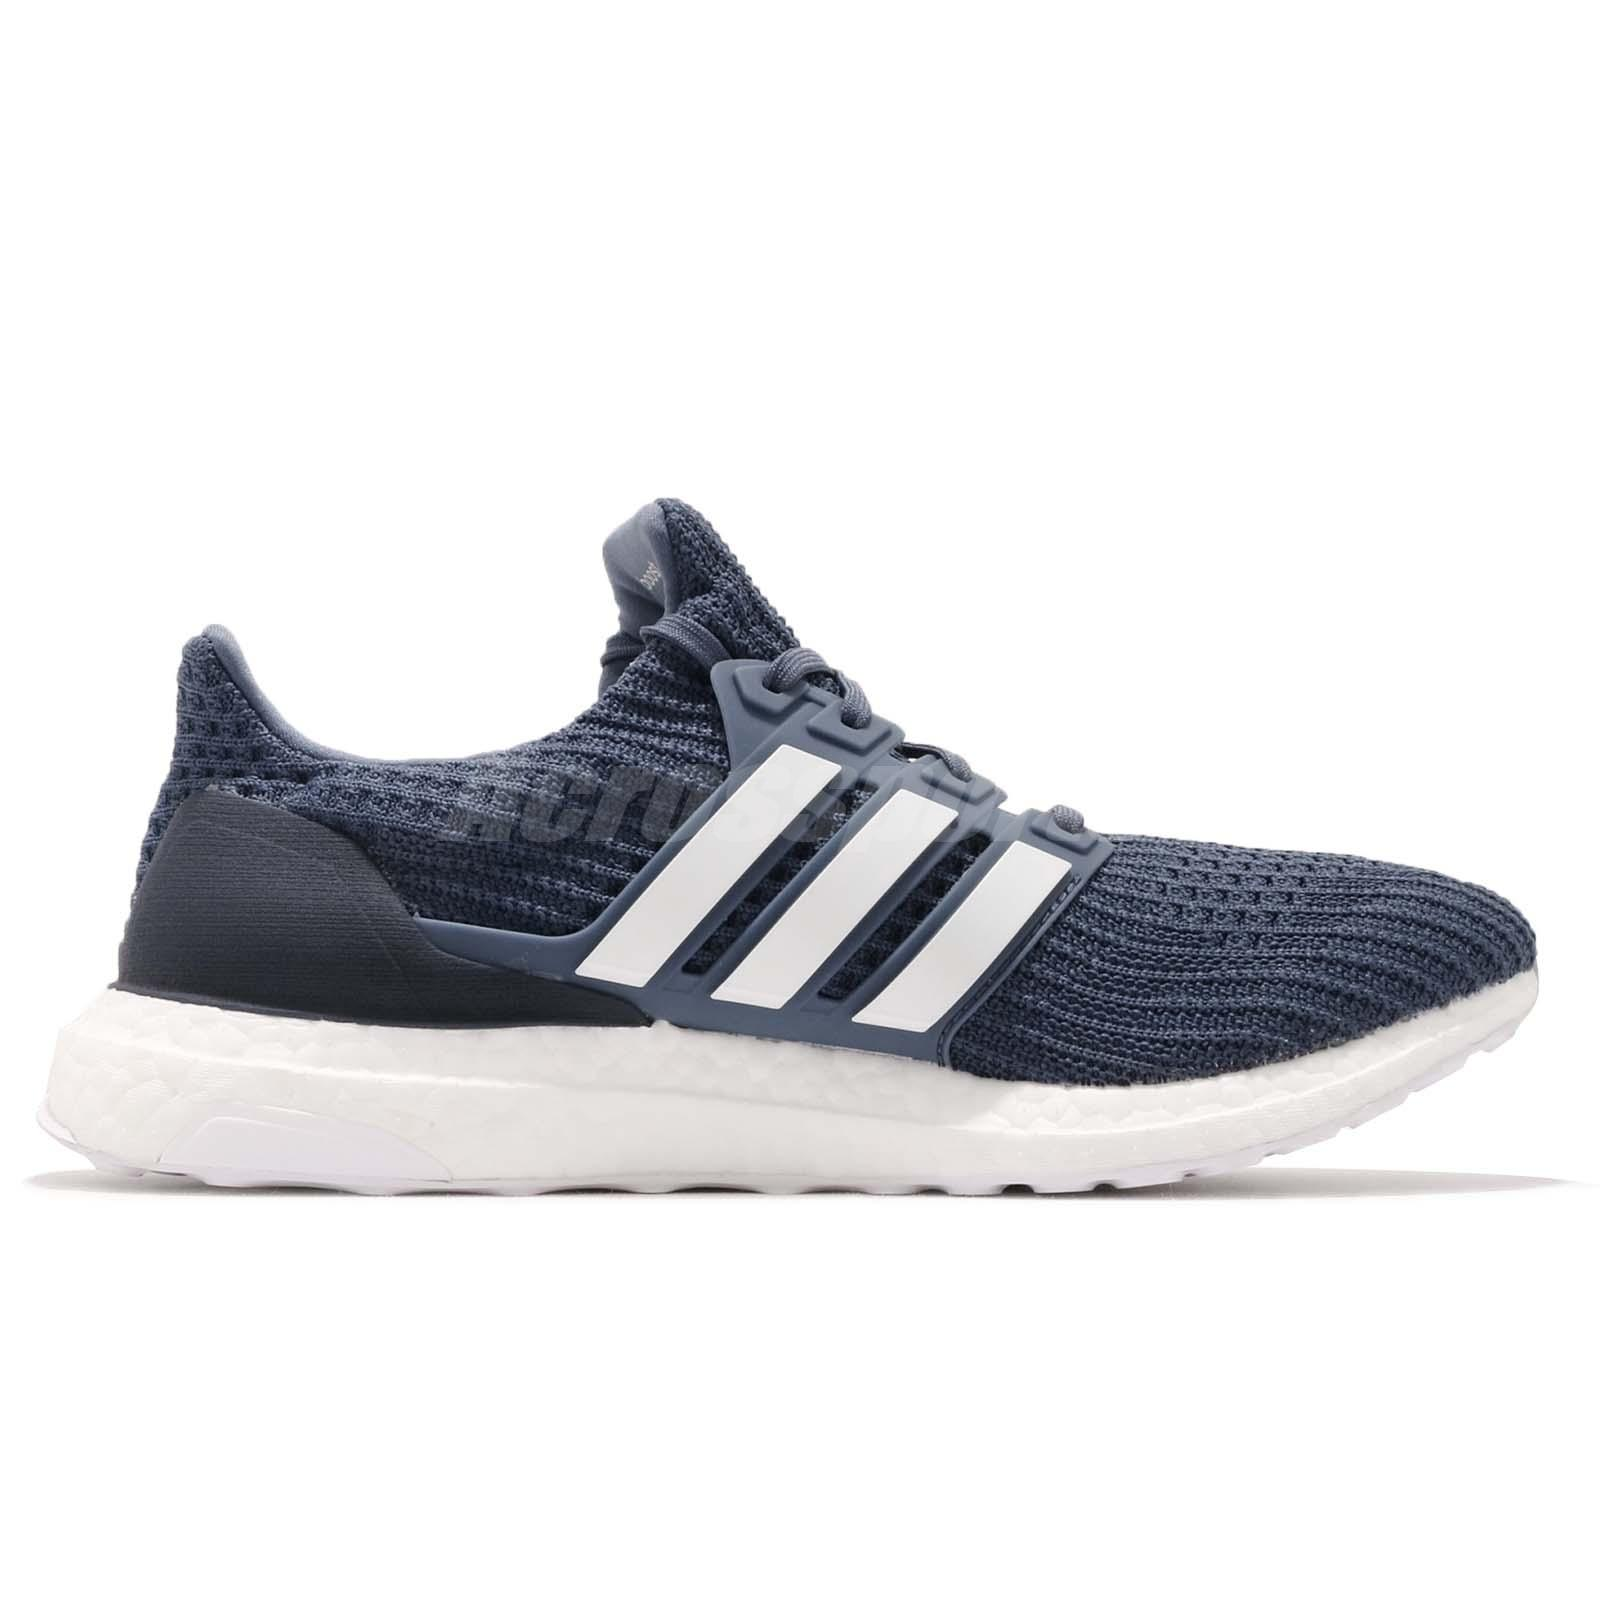 ab833253f adidas Ultraboost 4.0 Show Your Stripes Tech Ink White Men Running ...